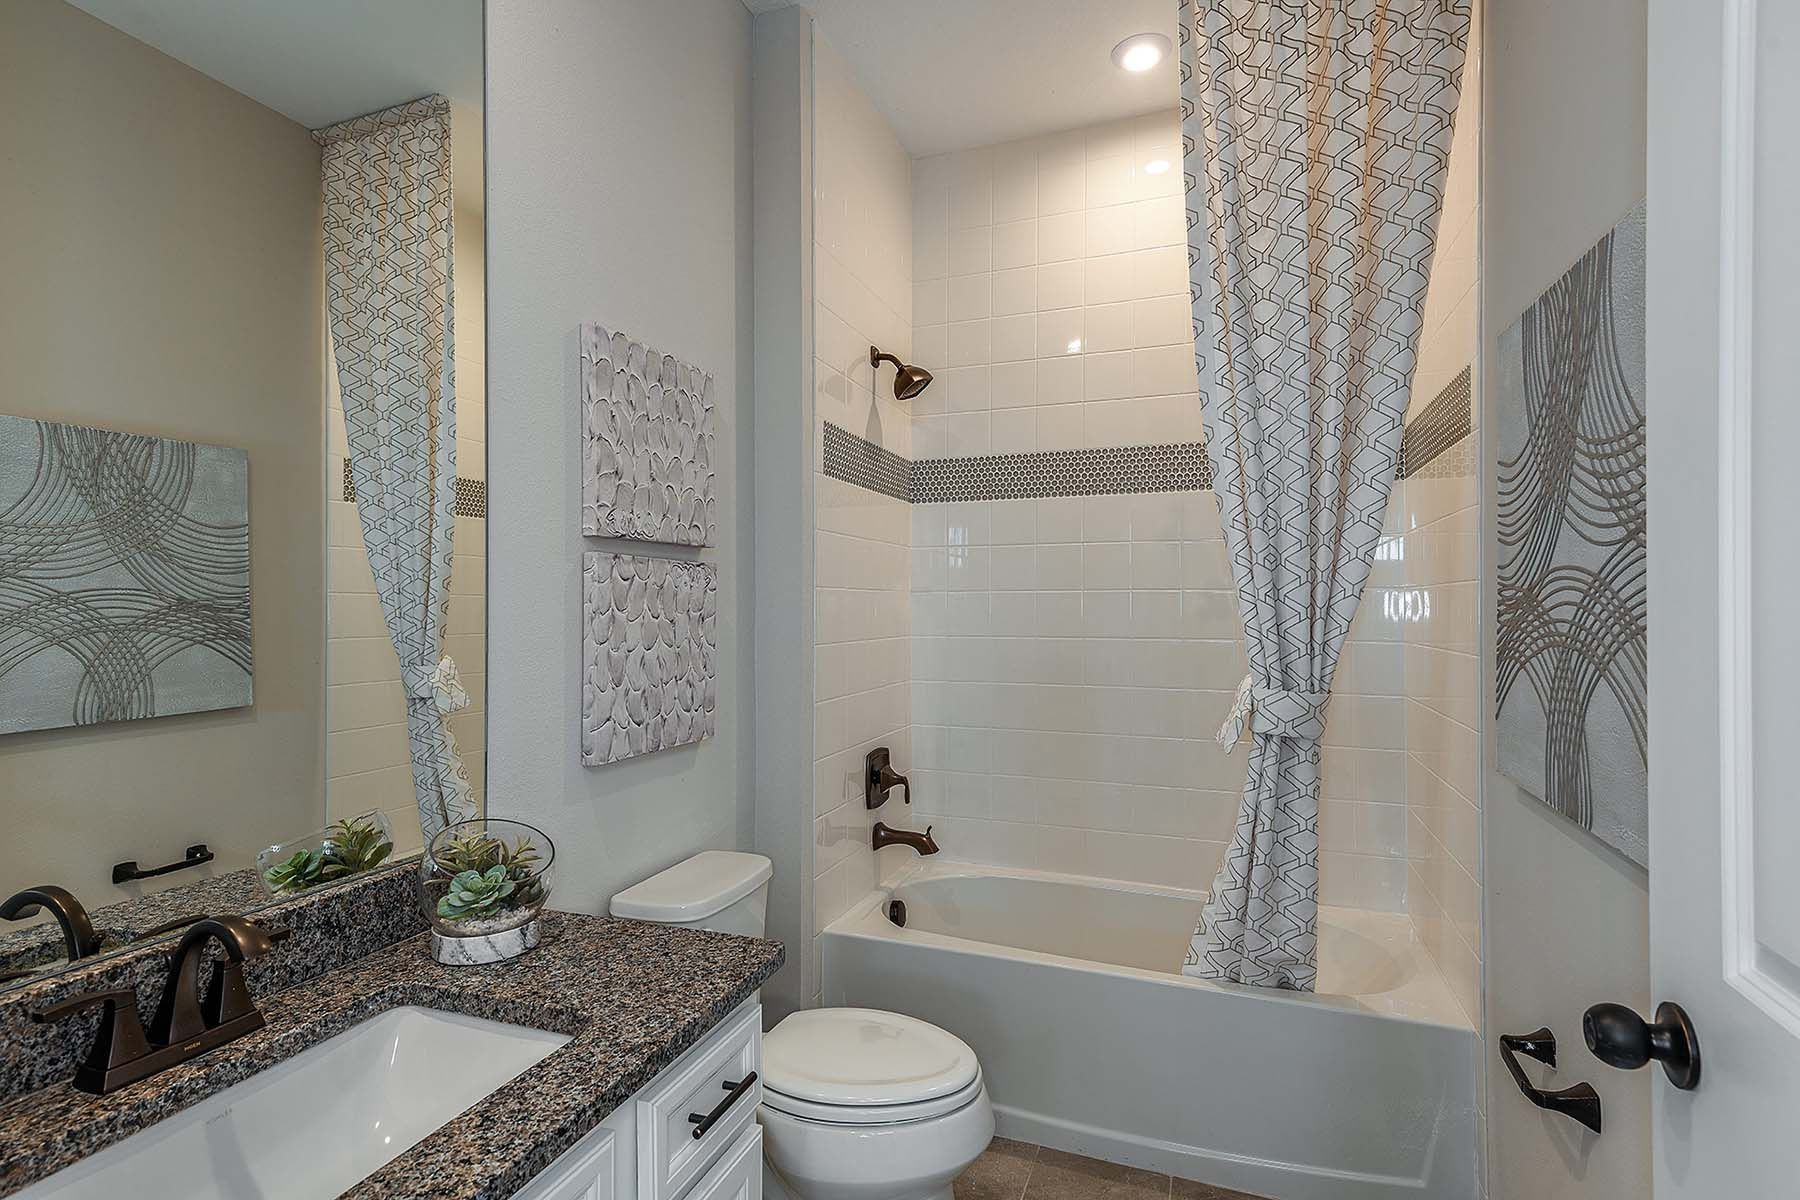 Bathroom featured in the Largo By Mattamy Homes in Fort Myers, FL